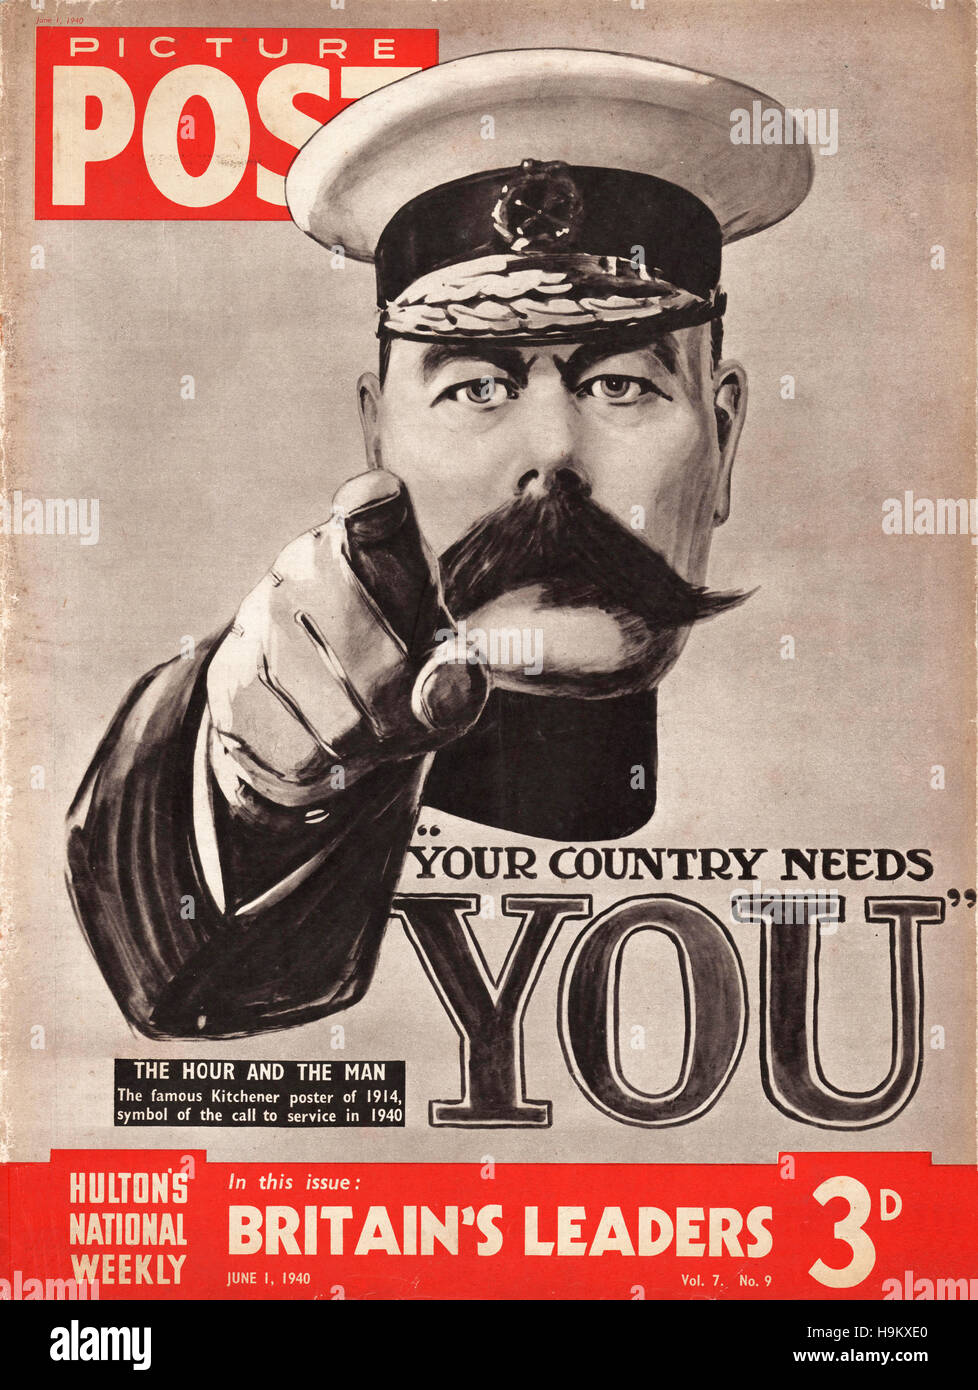 1940 Picture Post Kitchener Poster ('Your Country Needs You!') - Stock Image